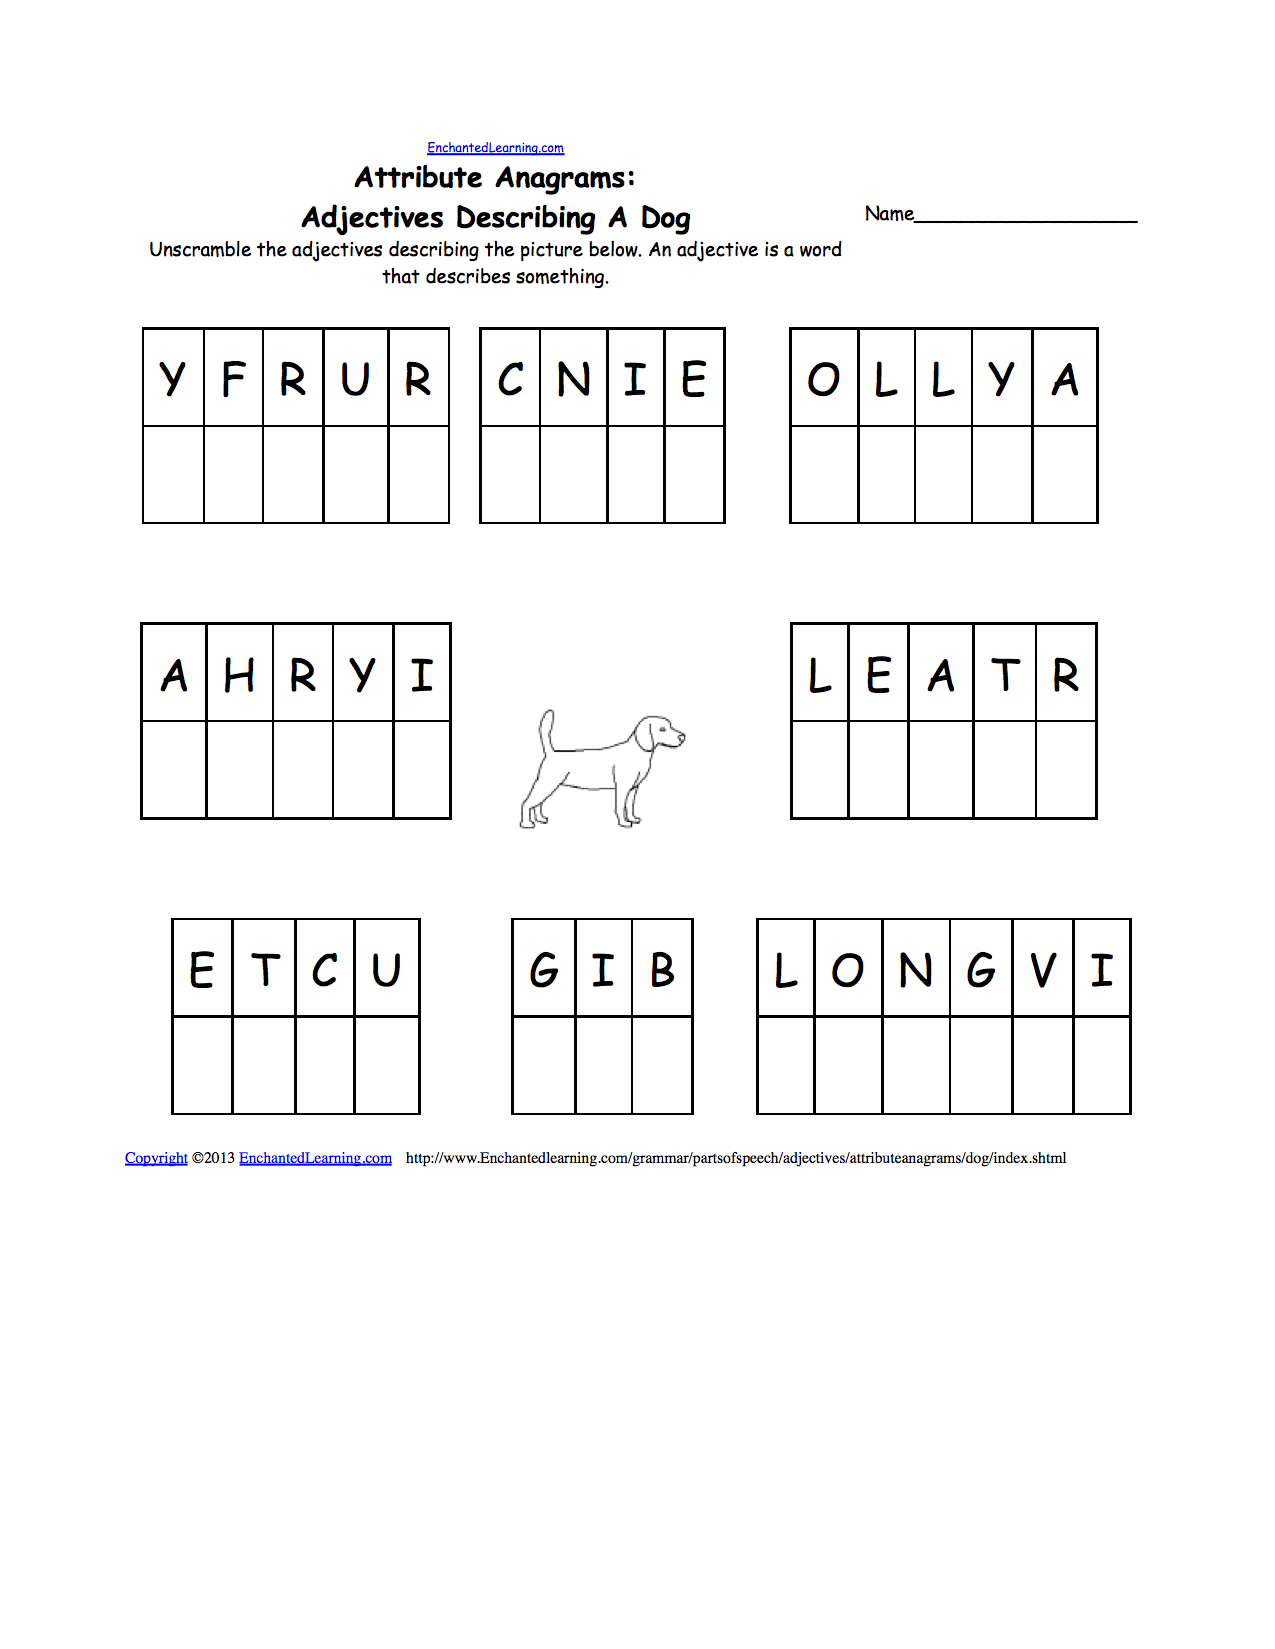 commmon proper r nouns worksheet pdf with answers